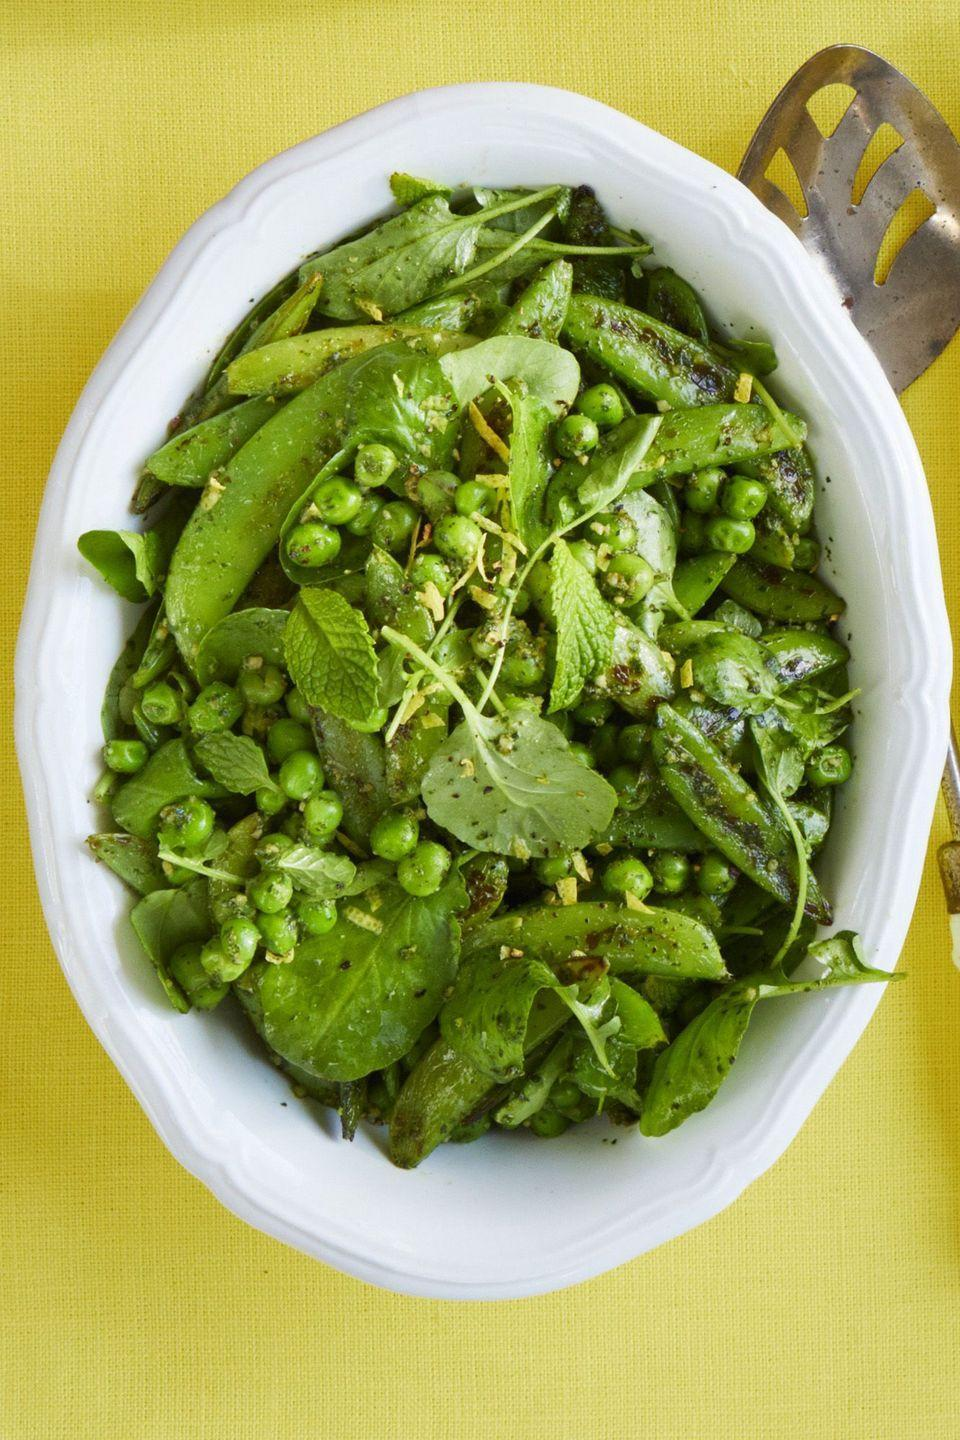 "<p>Break out the cast-iron skillet for this minty pesto pea salad. With hints of garlic, parsley, and lemon, this summer dish will tingle all of your tastebuds. </p><p><a href=""https://www.womansday.com/food-recipes/food-drinks/a19122134/blistered-pea-salad-with-mint-pesto-recipe/"" rel=""nofollow noopener"" target=""_blank"" data-ylk=""slk:Get the recipe for Blistered Pea Salad with Mint Pesto."" class=""link rapid-noclick-resp""><em>Get the recipe for Blistered Pea Salad with Mint Pesto.</em></a></p>"